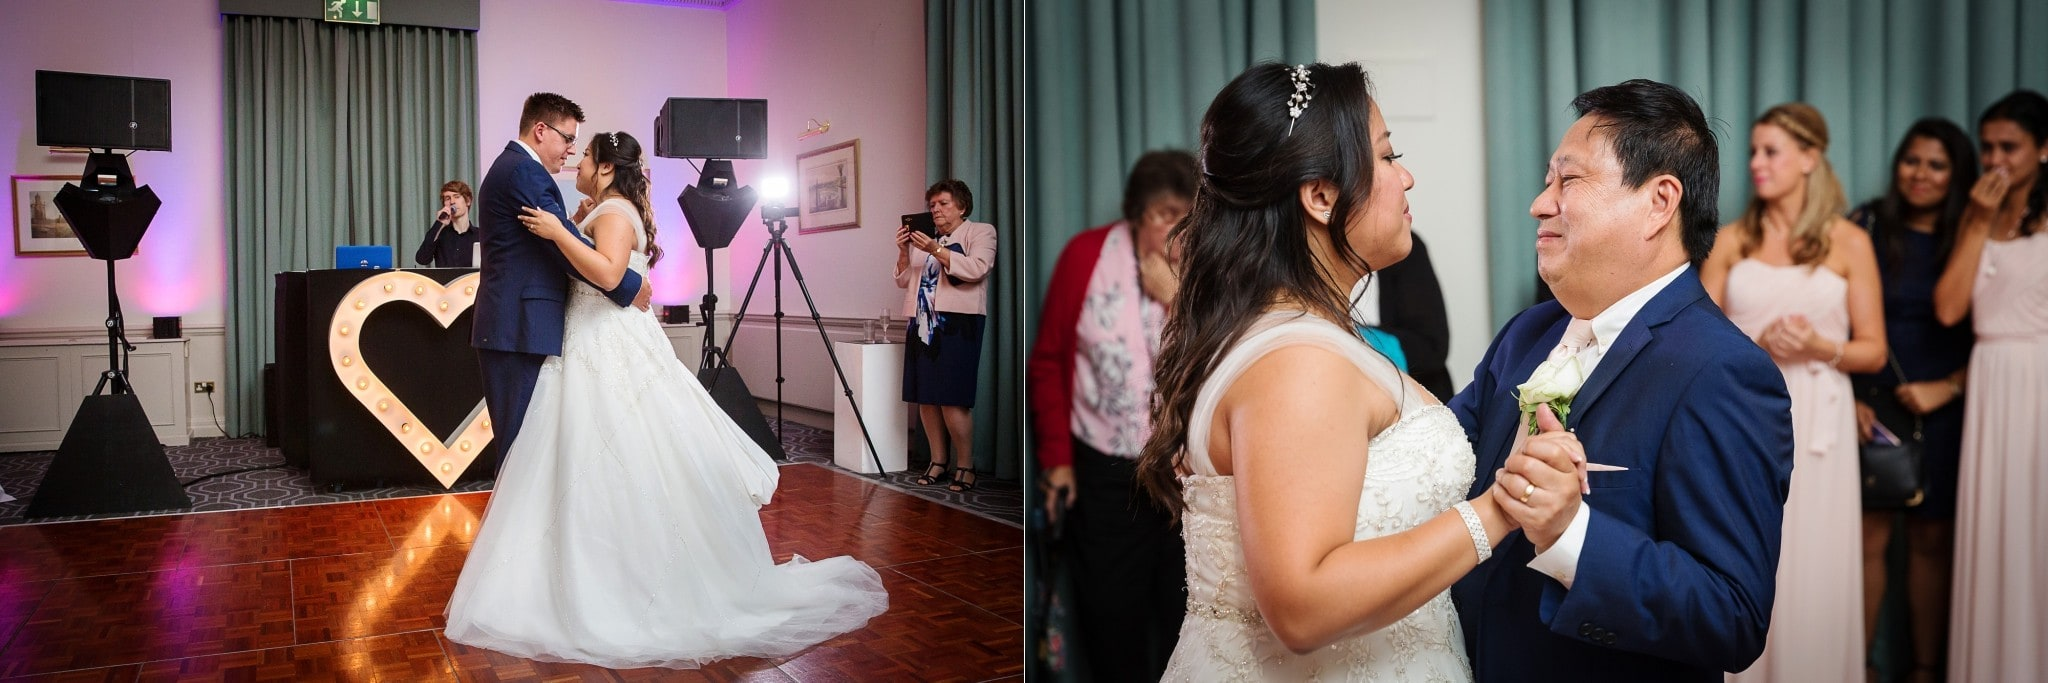 Theboalds_Estate_Wedding_Photography42